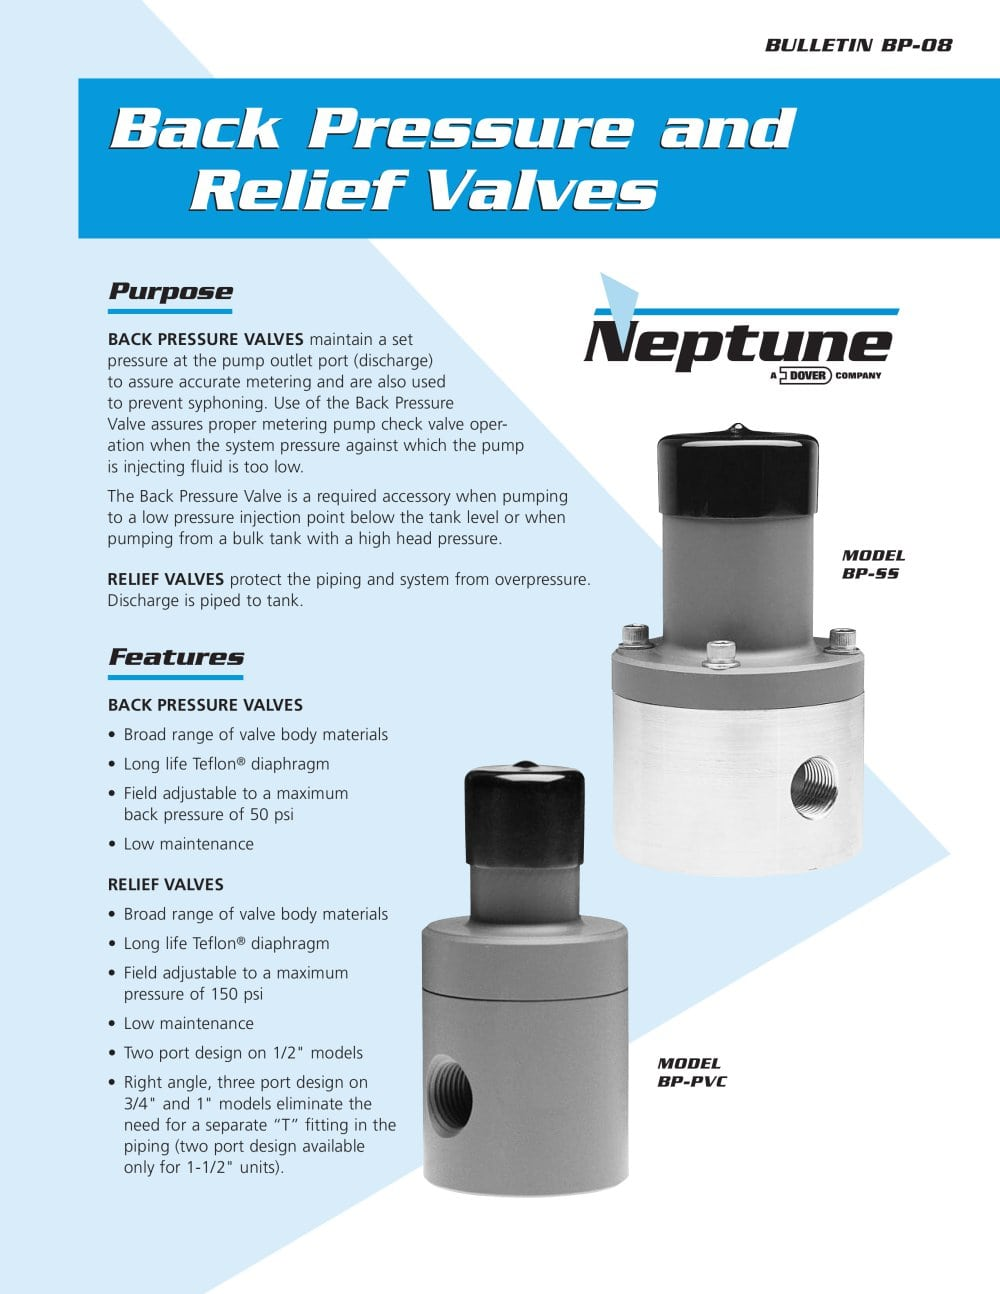 Accessories back pressure relief valves neptune chemical pump accessories back pressure relief valves 1 3 pages ccuart Image collections